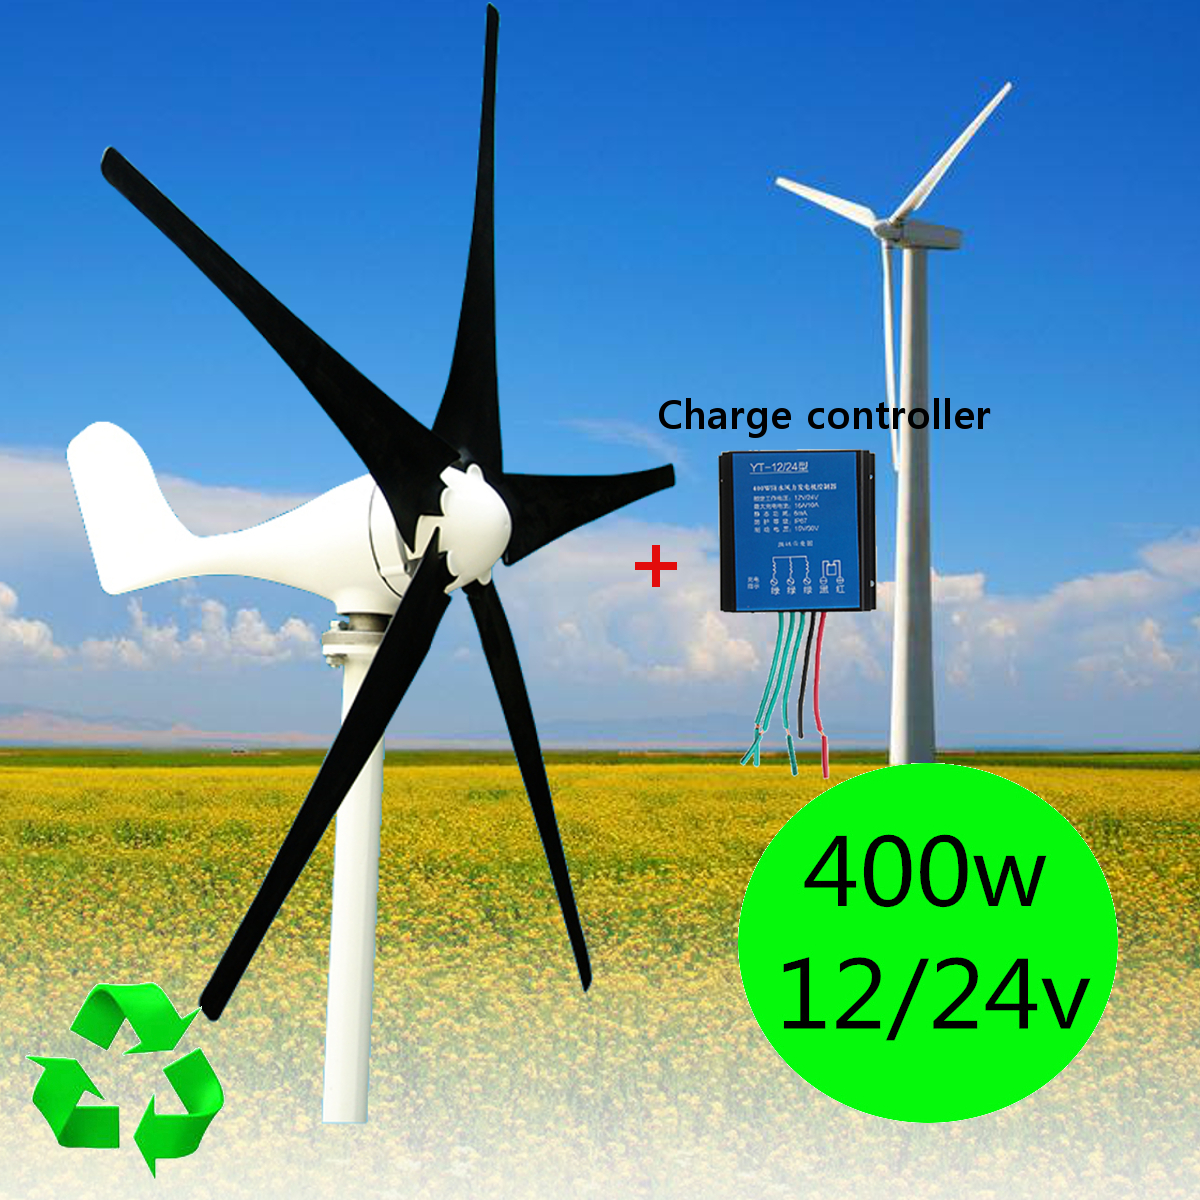 400W Power Wind Turbine Generator DC 12/24V 5 Blade with Windmill Charge Controller electronic equipments (Max 500W)